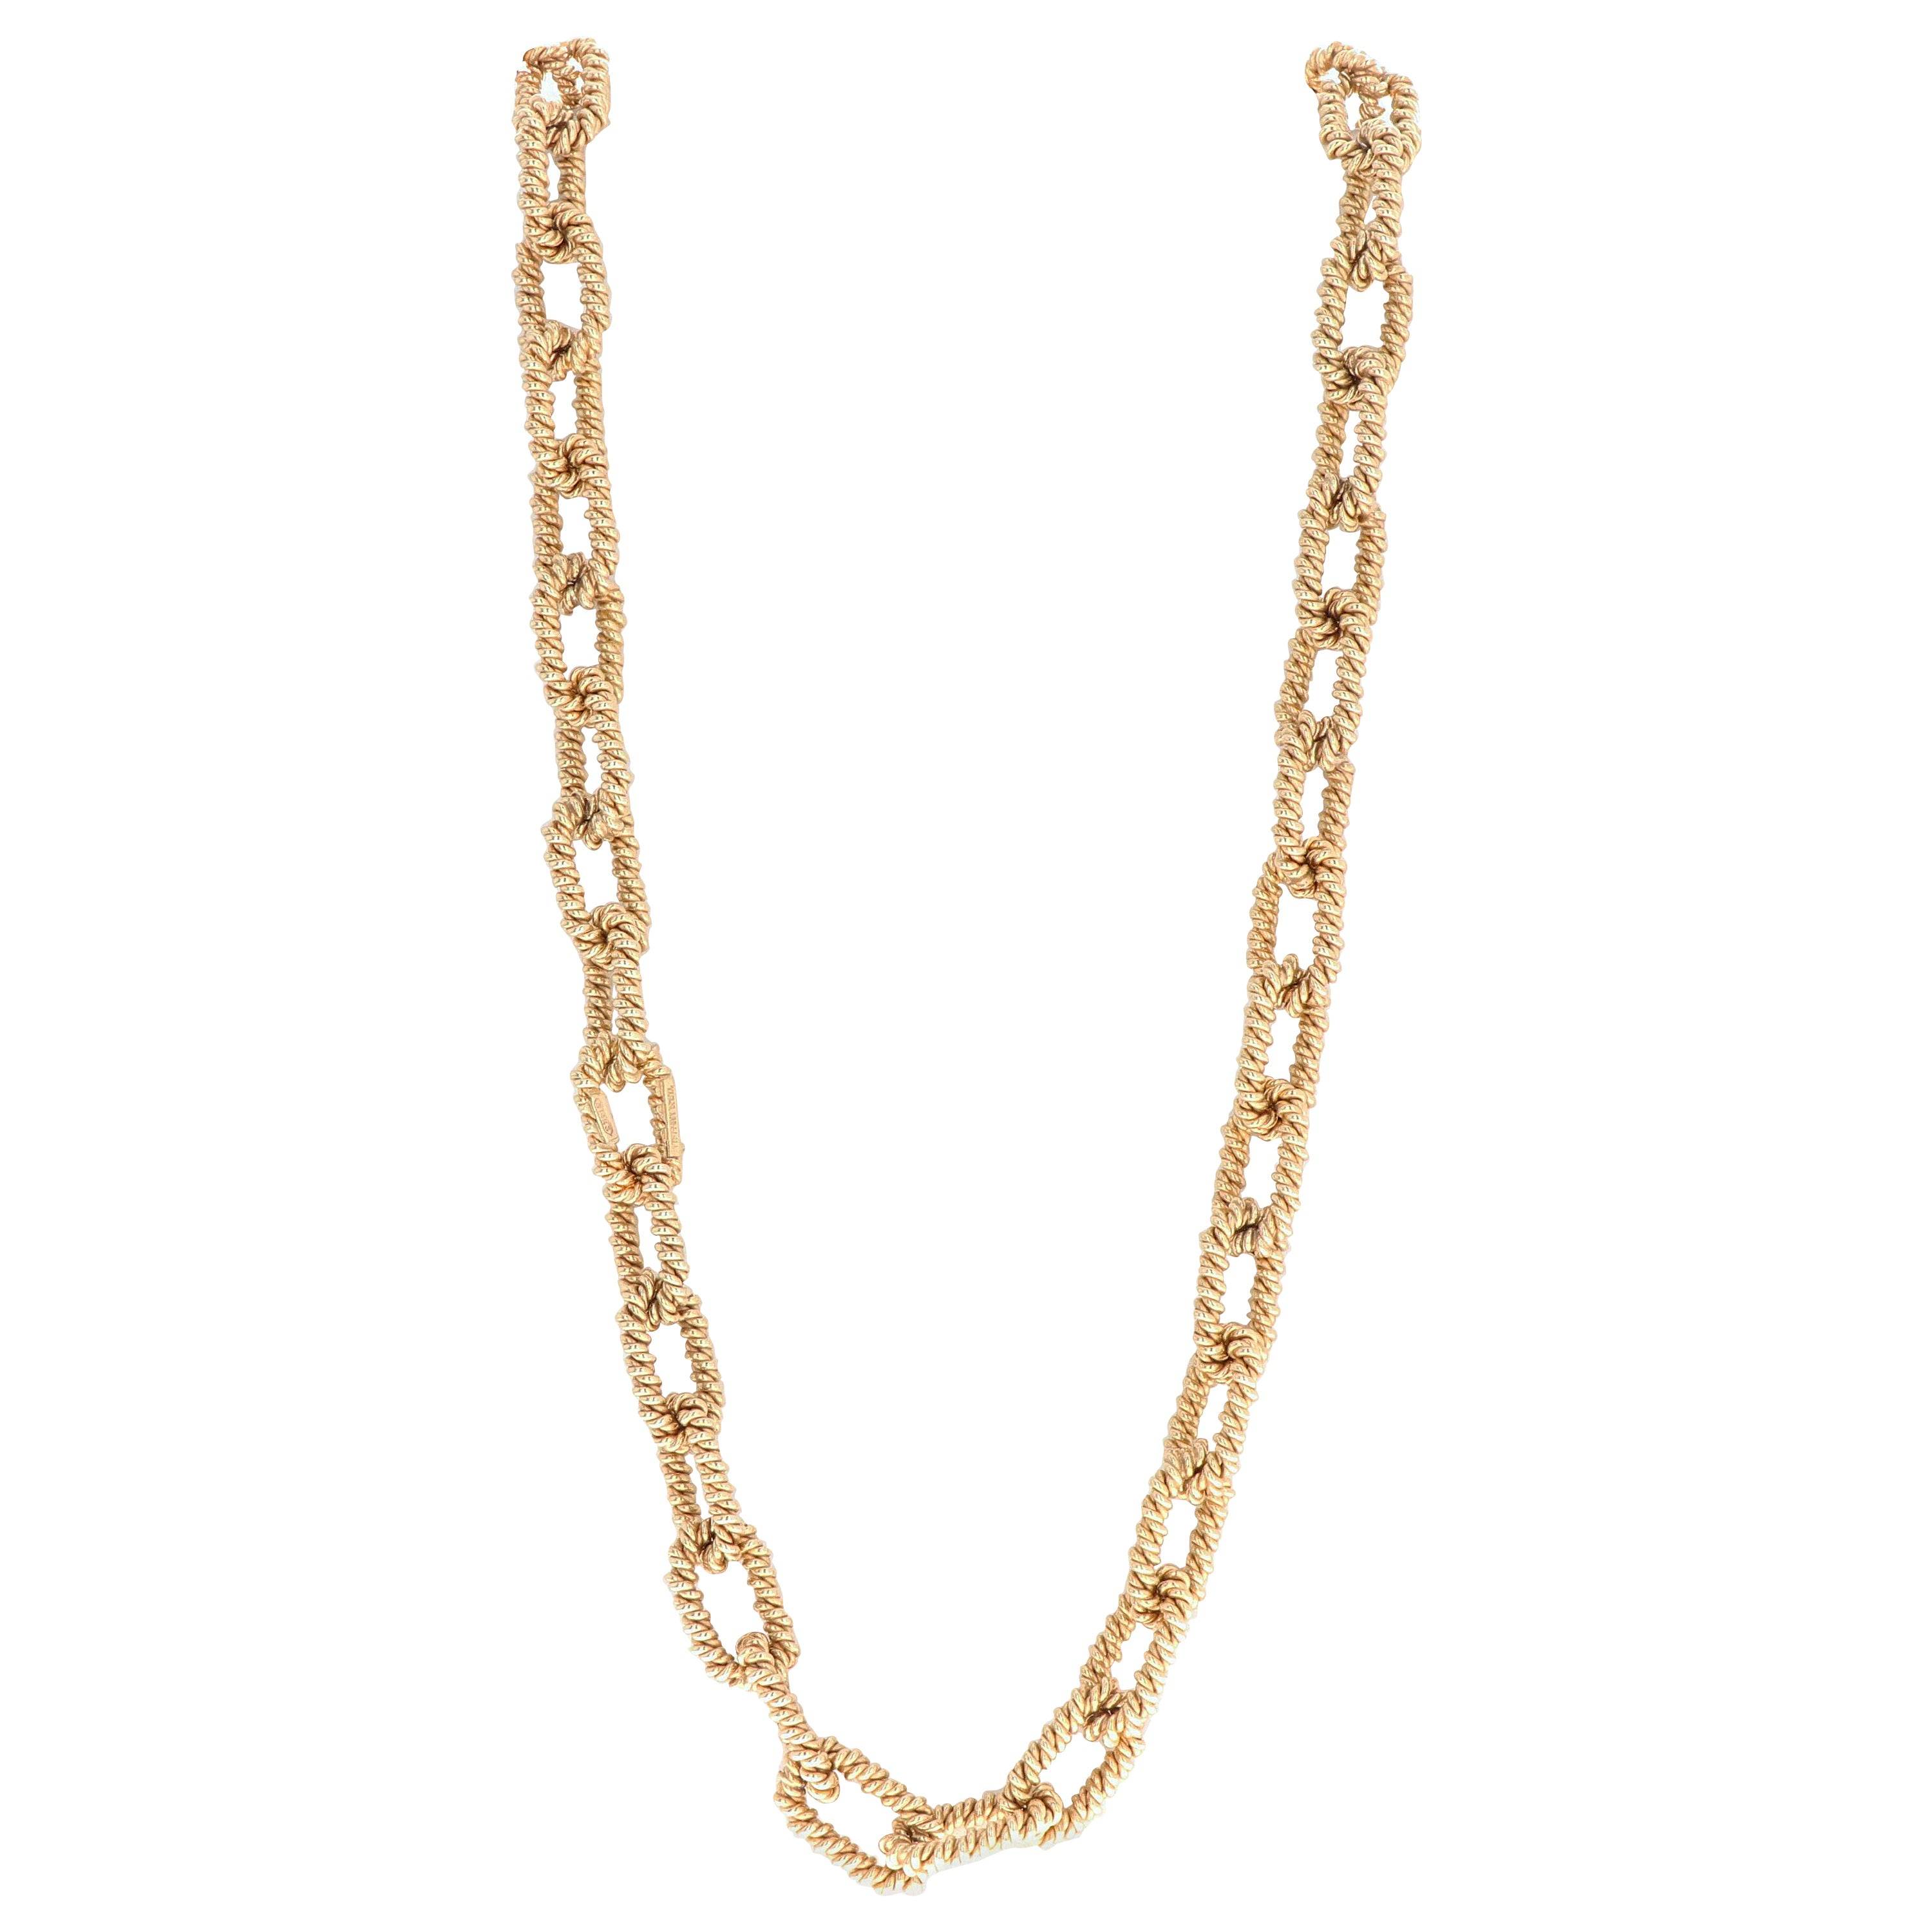 Tiffany & Co. 14 Karat Yellow Gold Link Necklace